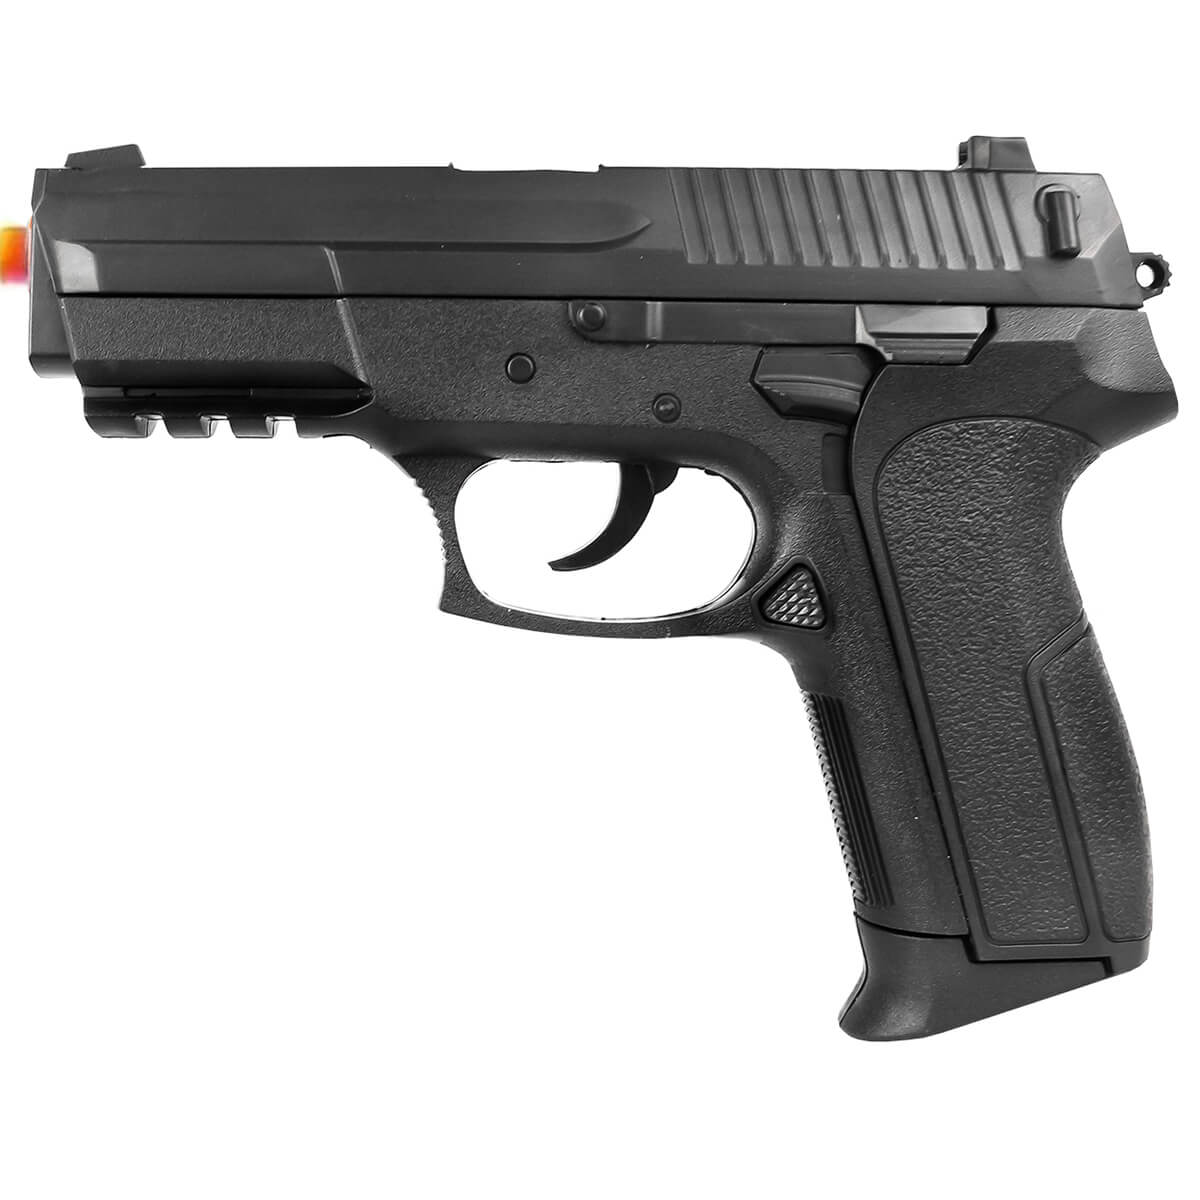 Pistola Airsoft VG S2022 6mm Rossi